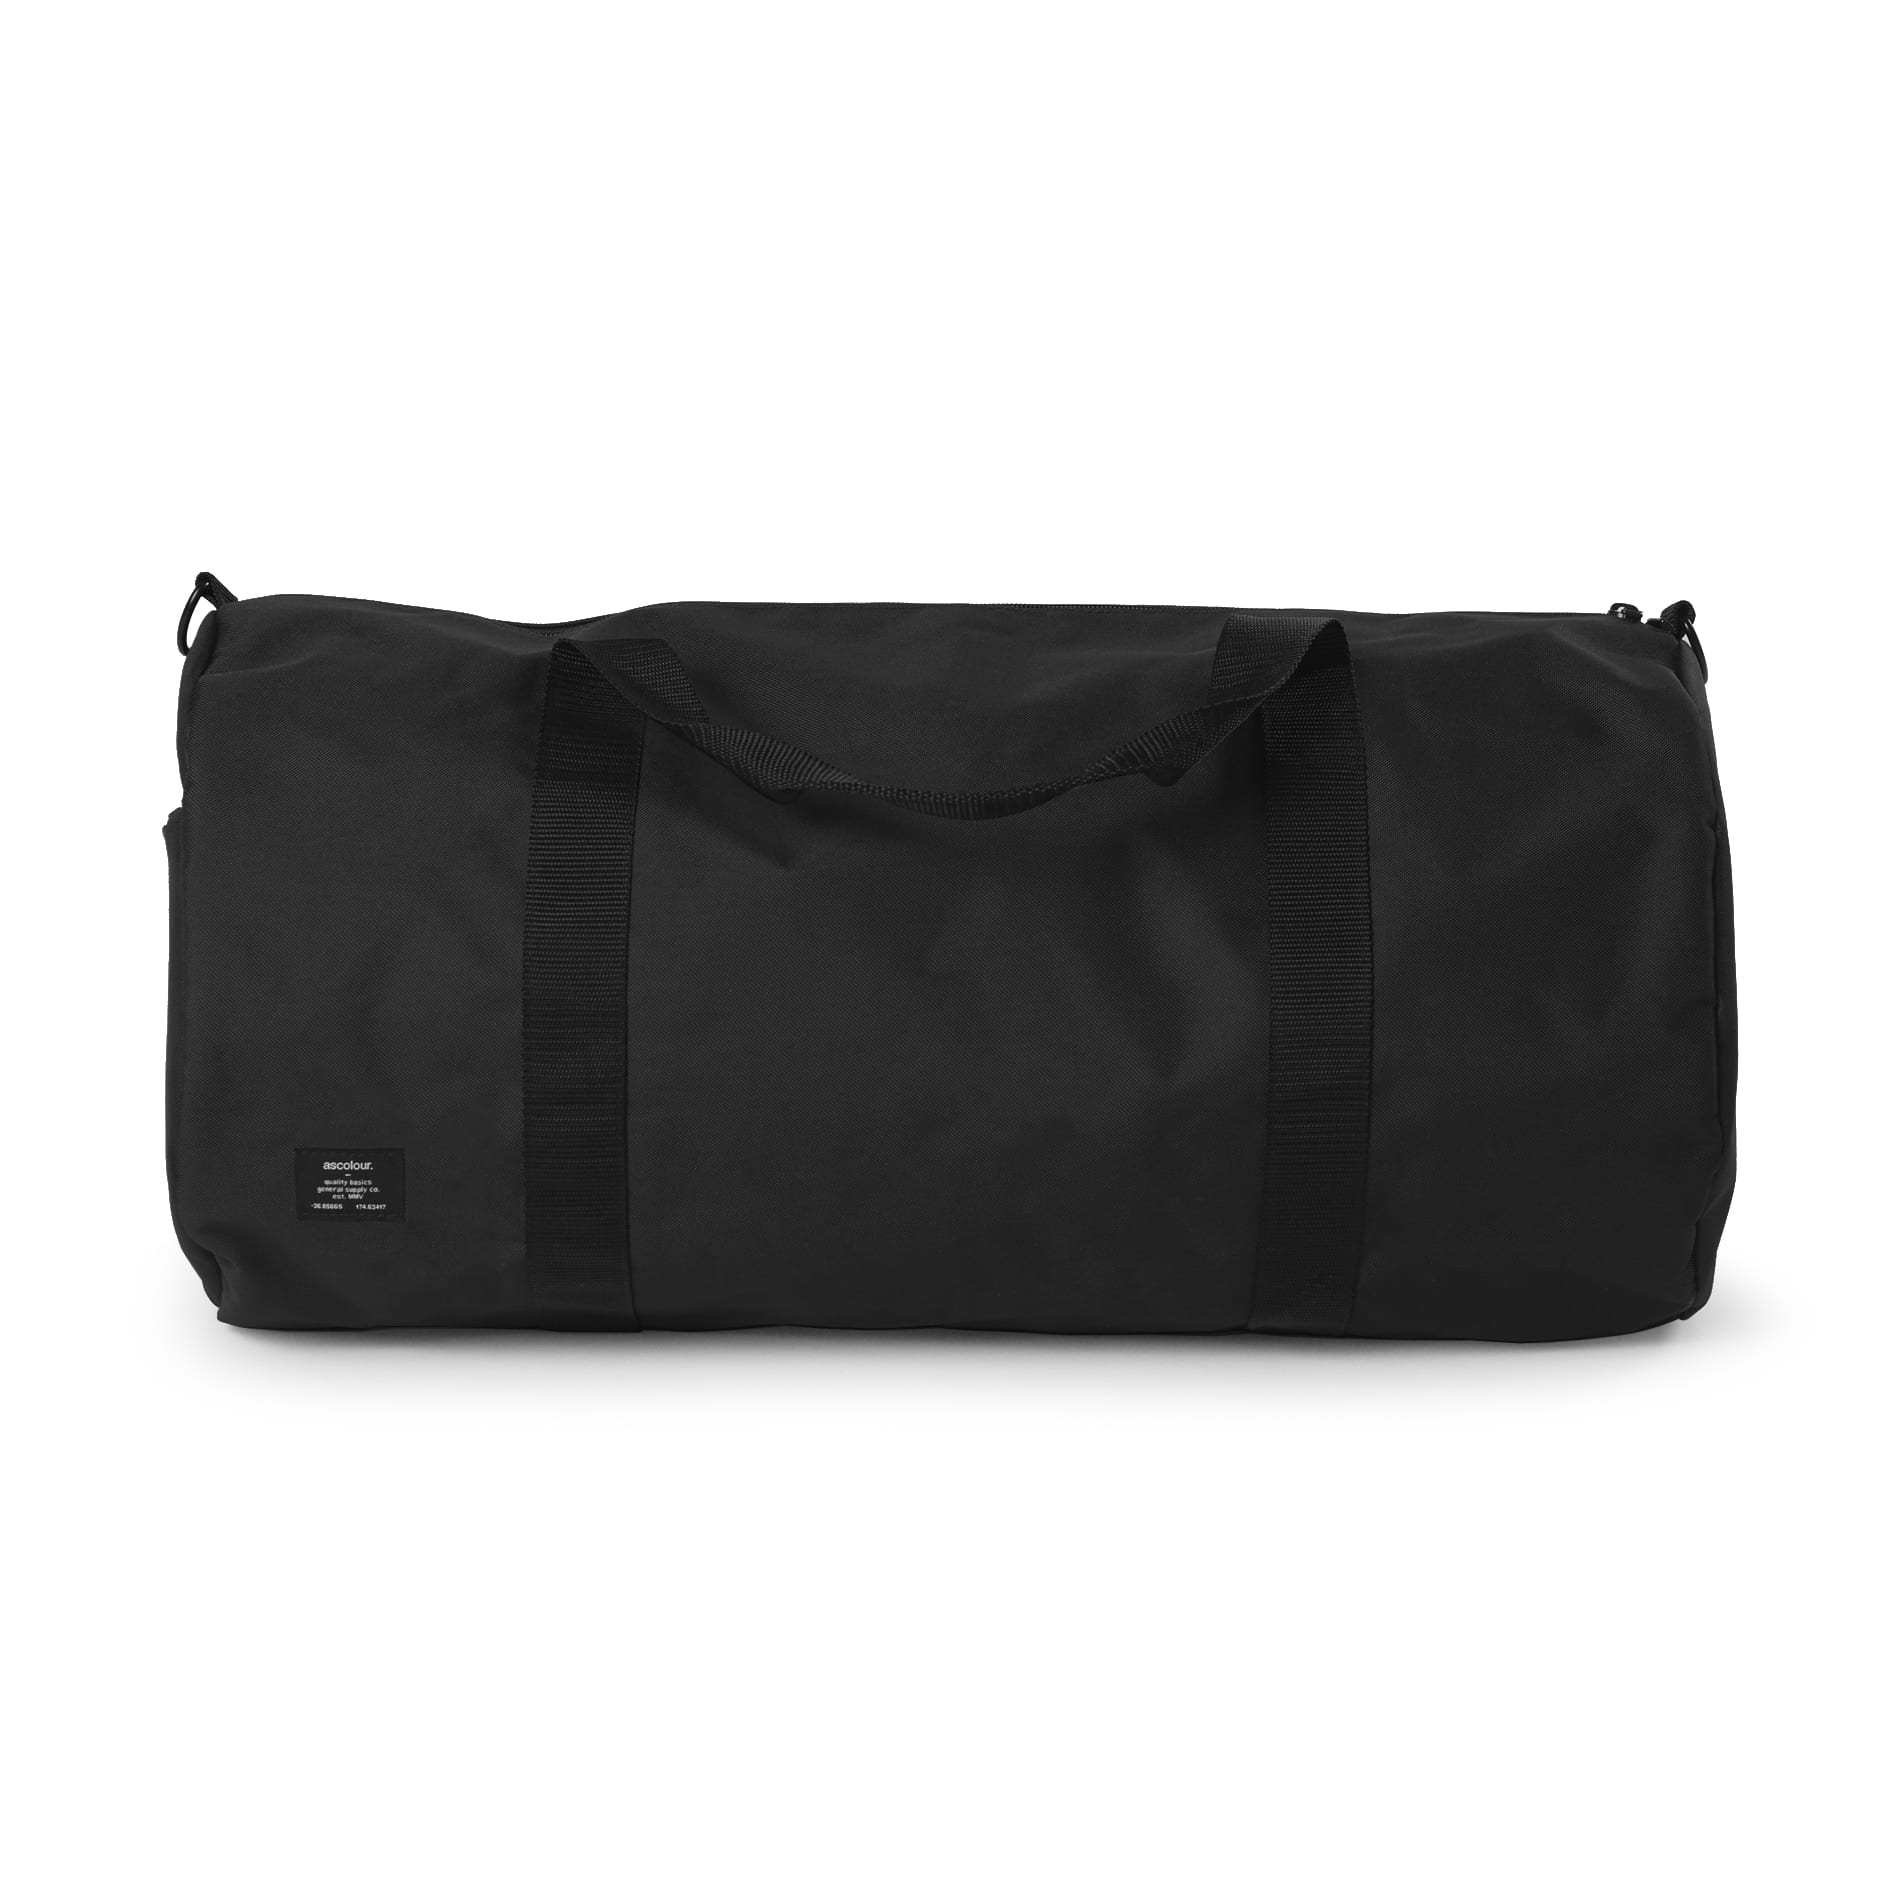 AS 1003 Area Duffel Bag